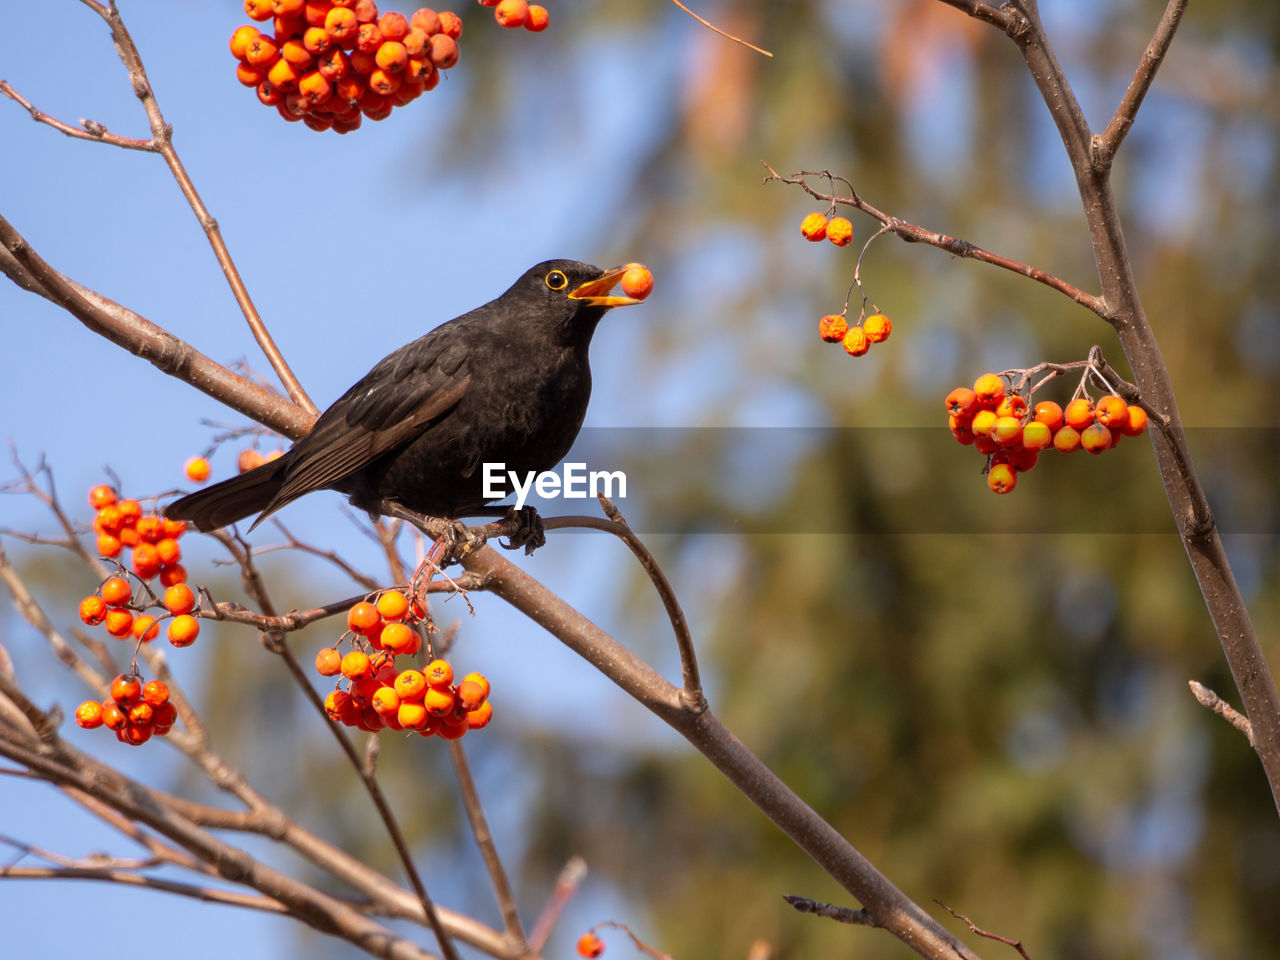 bird, vertebrate, perching, animal, animal themes, animals in the wild, animal wildlife, food, plant, tree, focus on foreground, food and drink, branch, fruit, no people, day, healthy eating, nature, outdoors, low angle view, blackbird